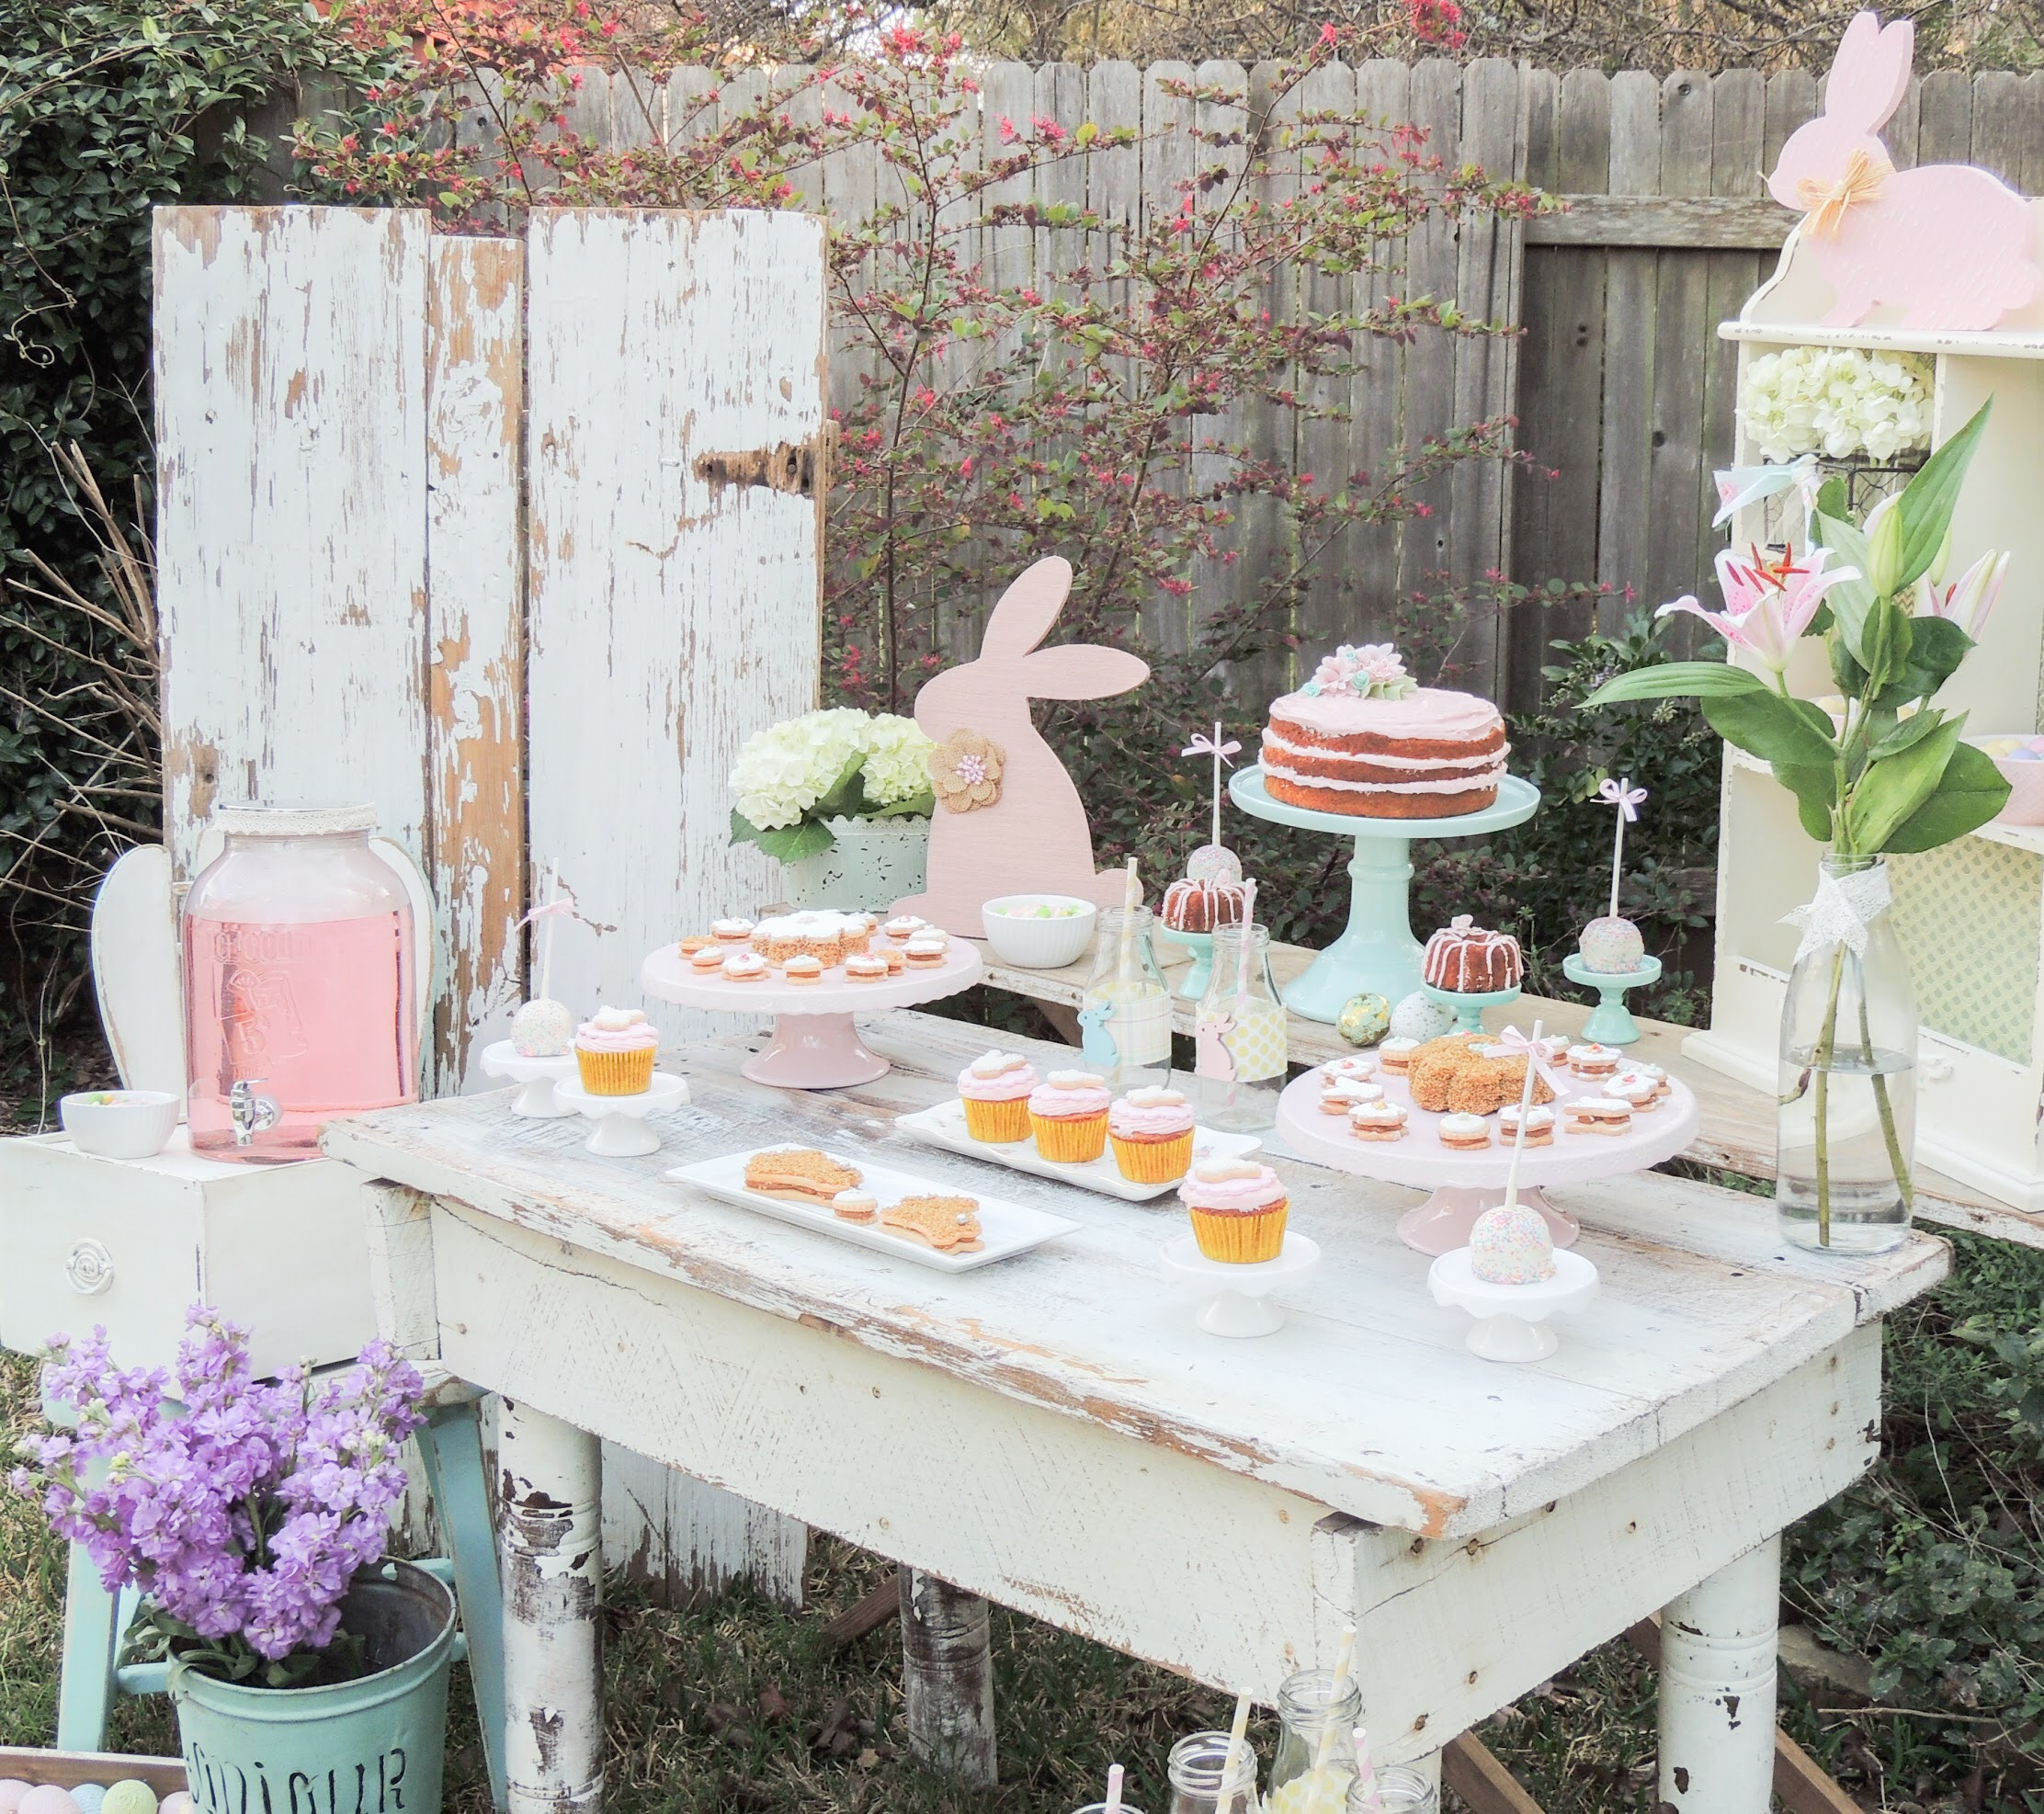 Vintage and shabby chic easter party ideas from Austin party stylist, Mint Event Design